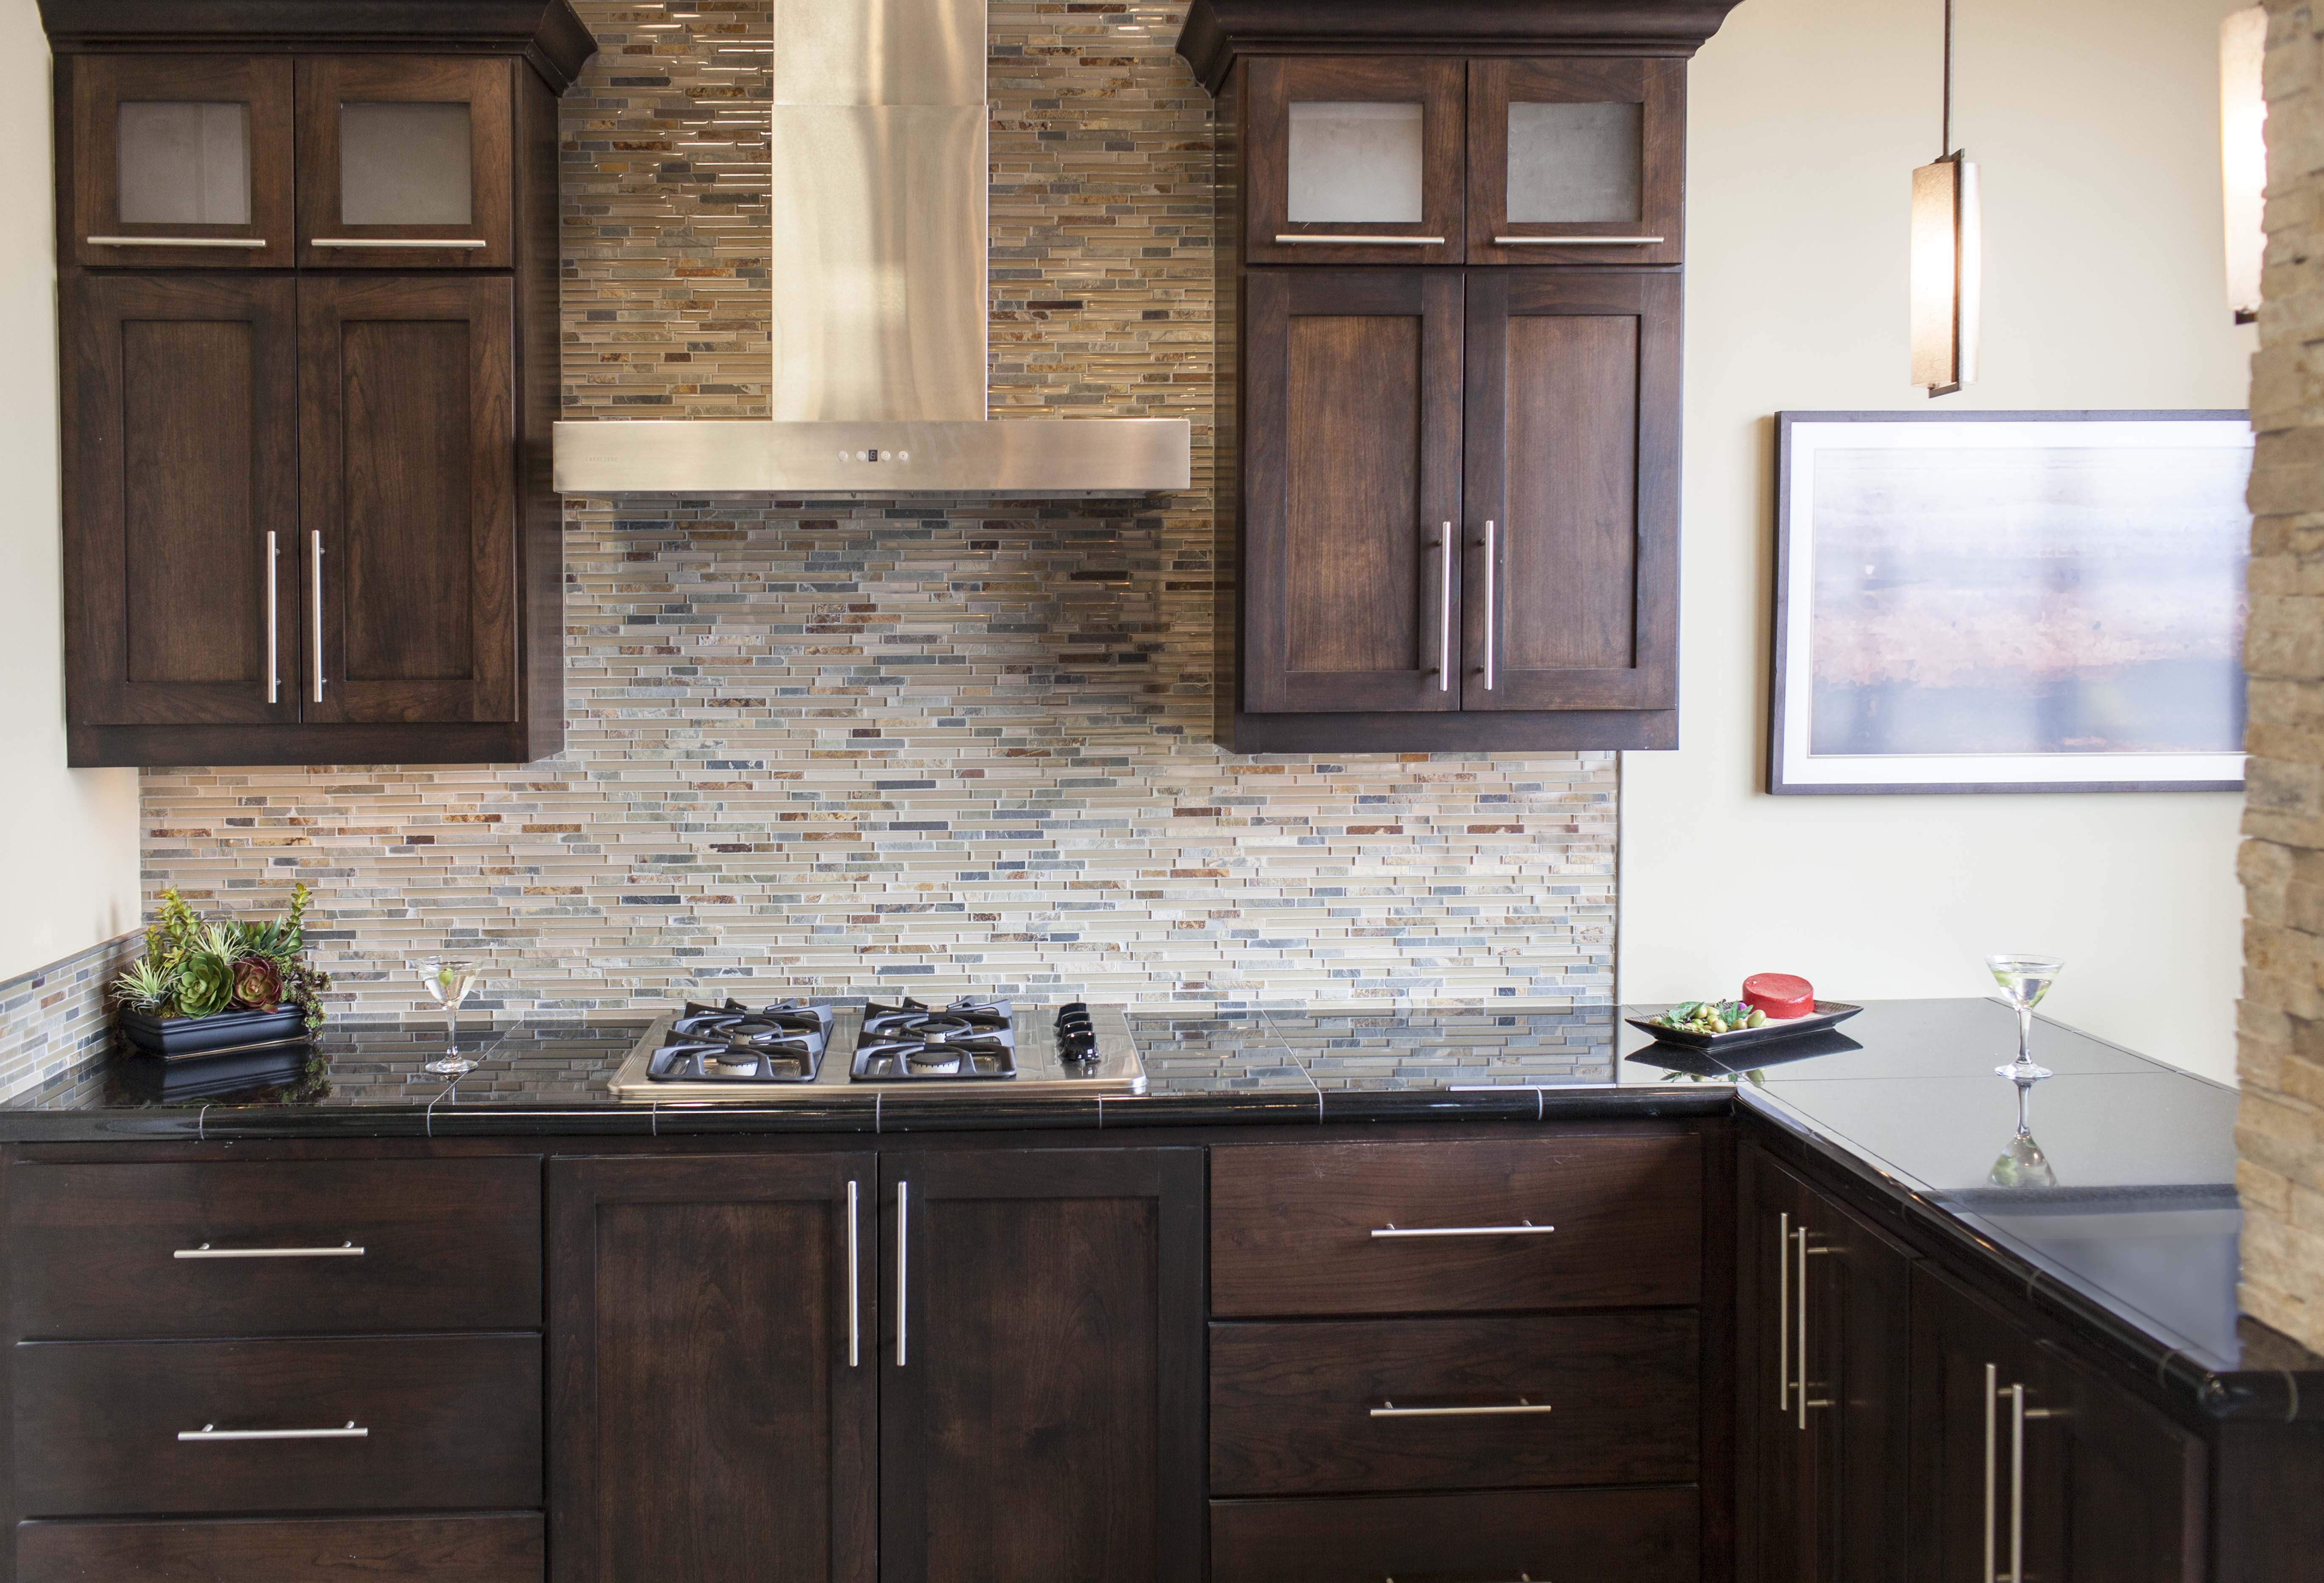 Dark stained cabinetry with glass and stone mosaic backsplash and